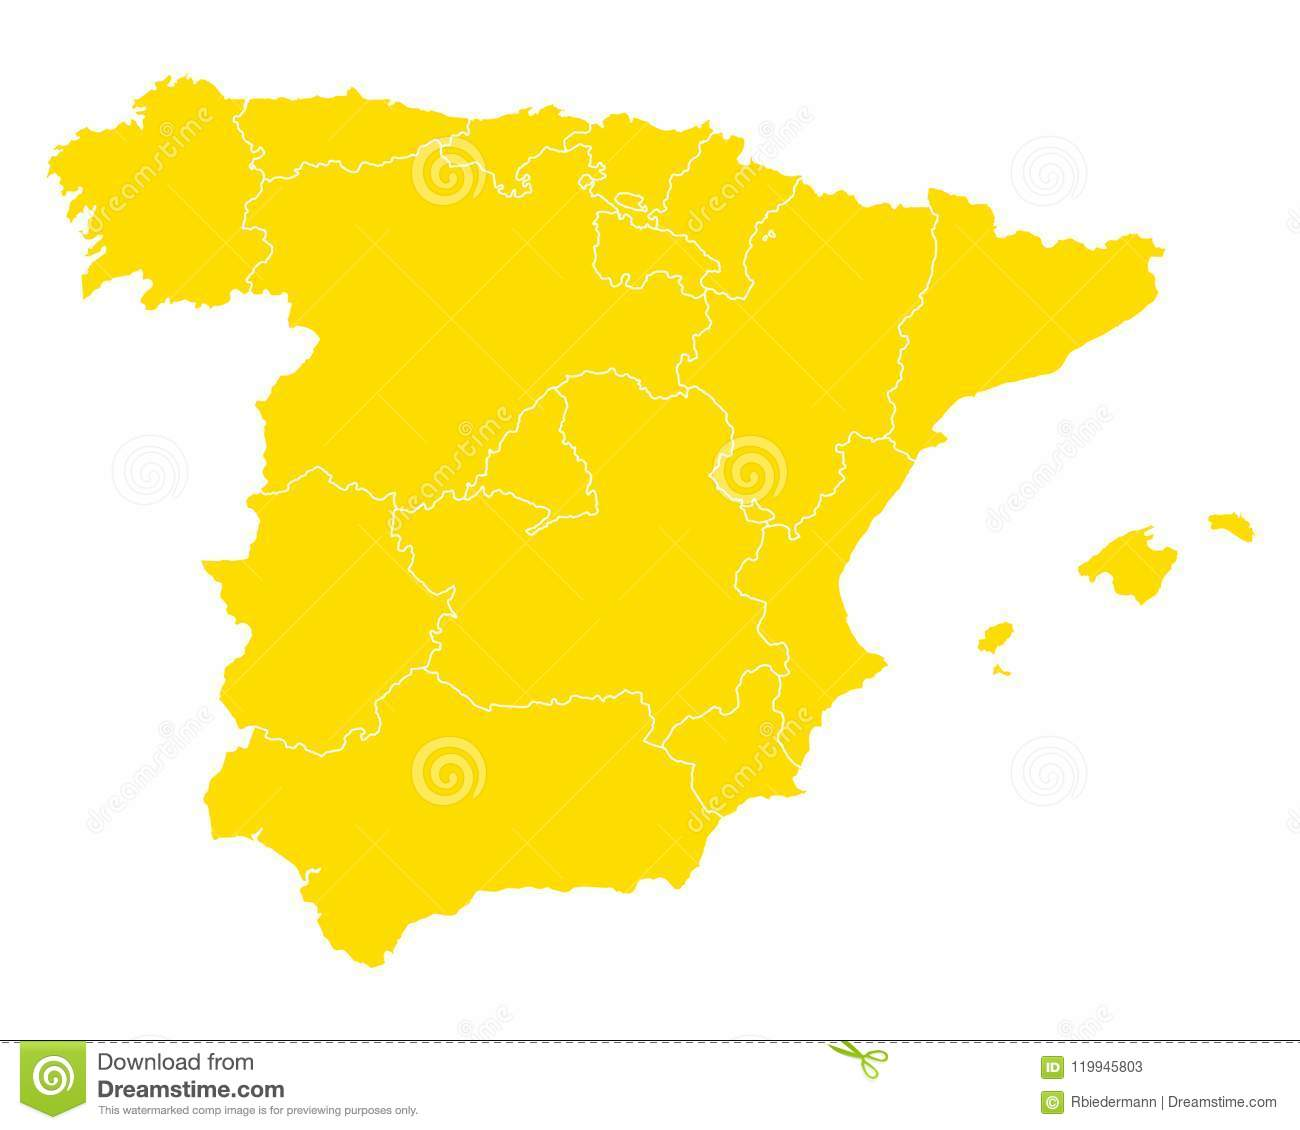 Map Of Spain Download Free.Map Of Spain Stock Vector Illustration Of Travel Isolated 119945803